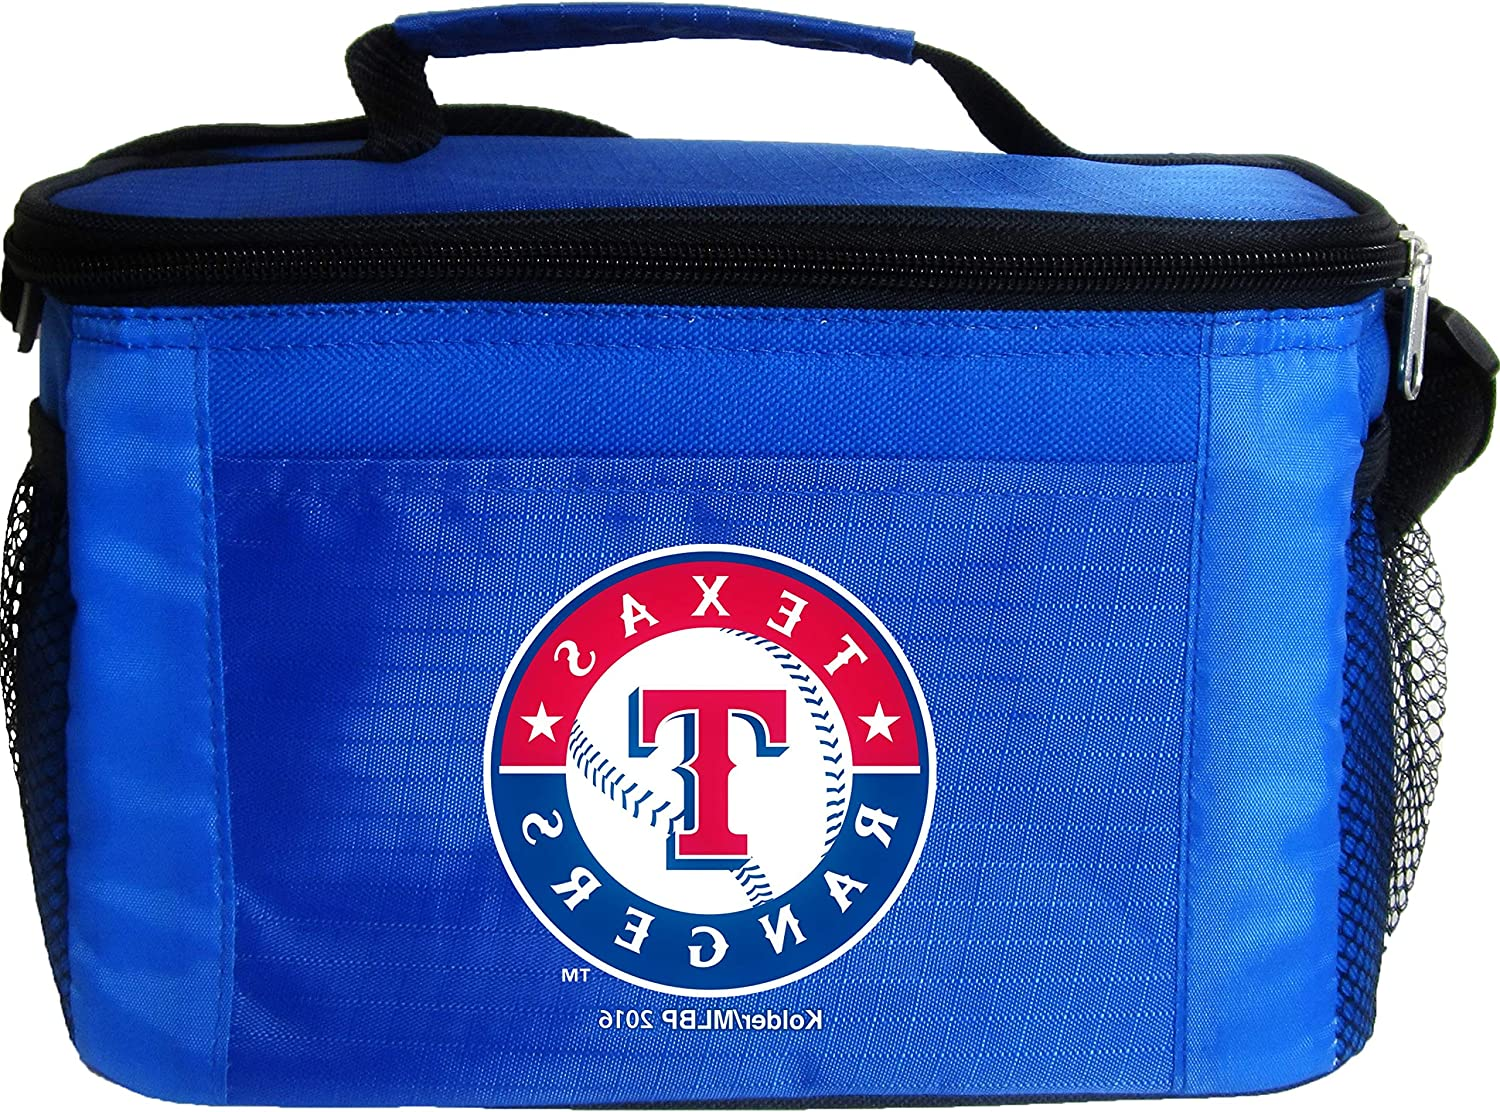 TRS-style rangers NEW before selling ☆ Limited price - 6pk cooler 10327-11724 bag Mod Mod#1531